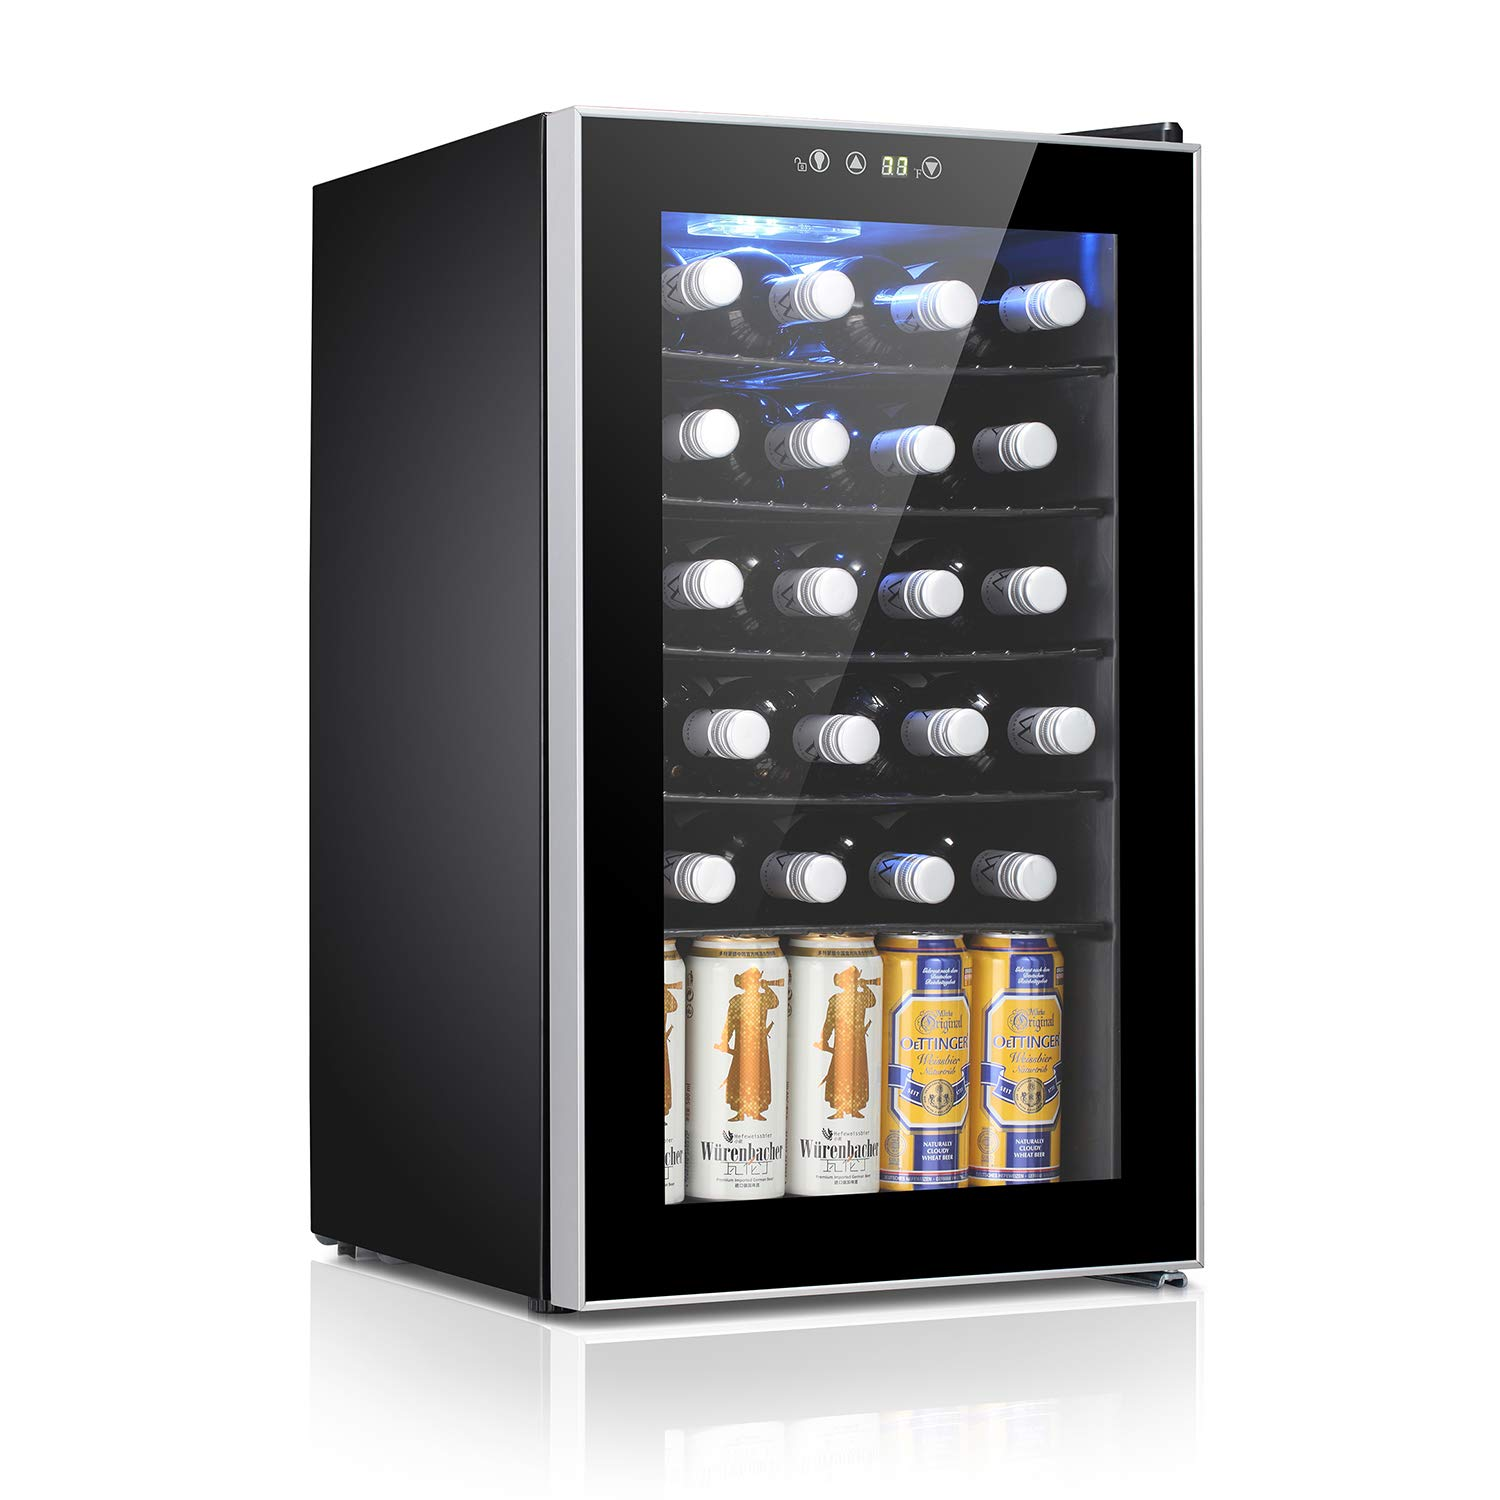 Antarctic Star 24 Bottle Wine Cooler/Cabinet Beverage Refrigerator Small Red & White Wine Cellar Adjust Temperature Beer Counter Top Bar Fridge Quiet Operation Compressor Freestanding Black